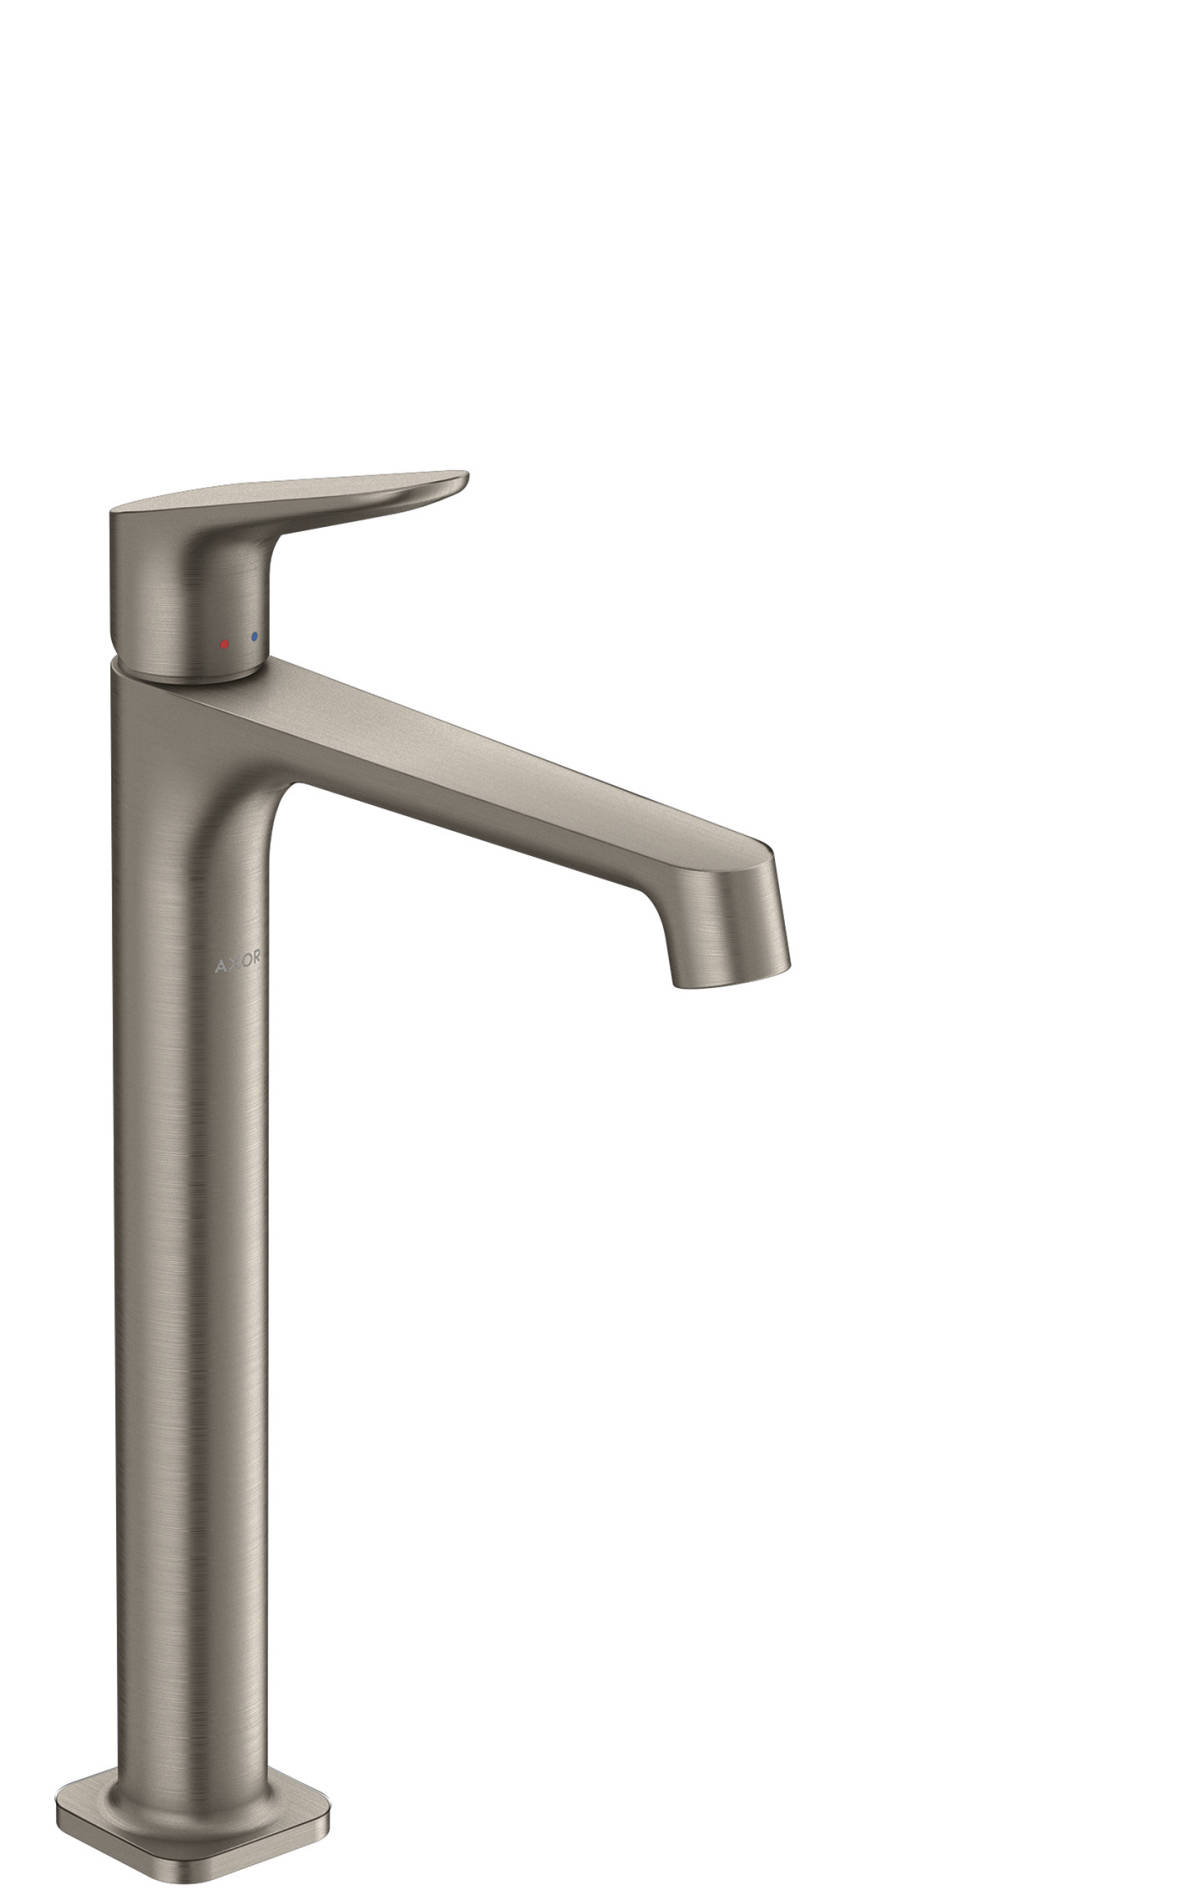 Single lever basin mixer 250 for washbowls with waste set, Stainless Steel Optic, 34127800